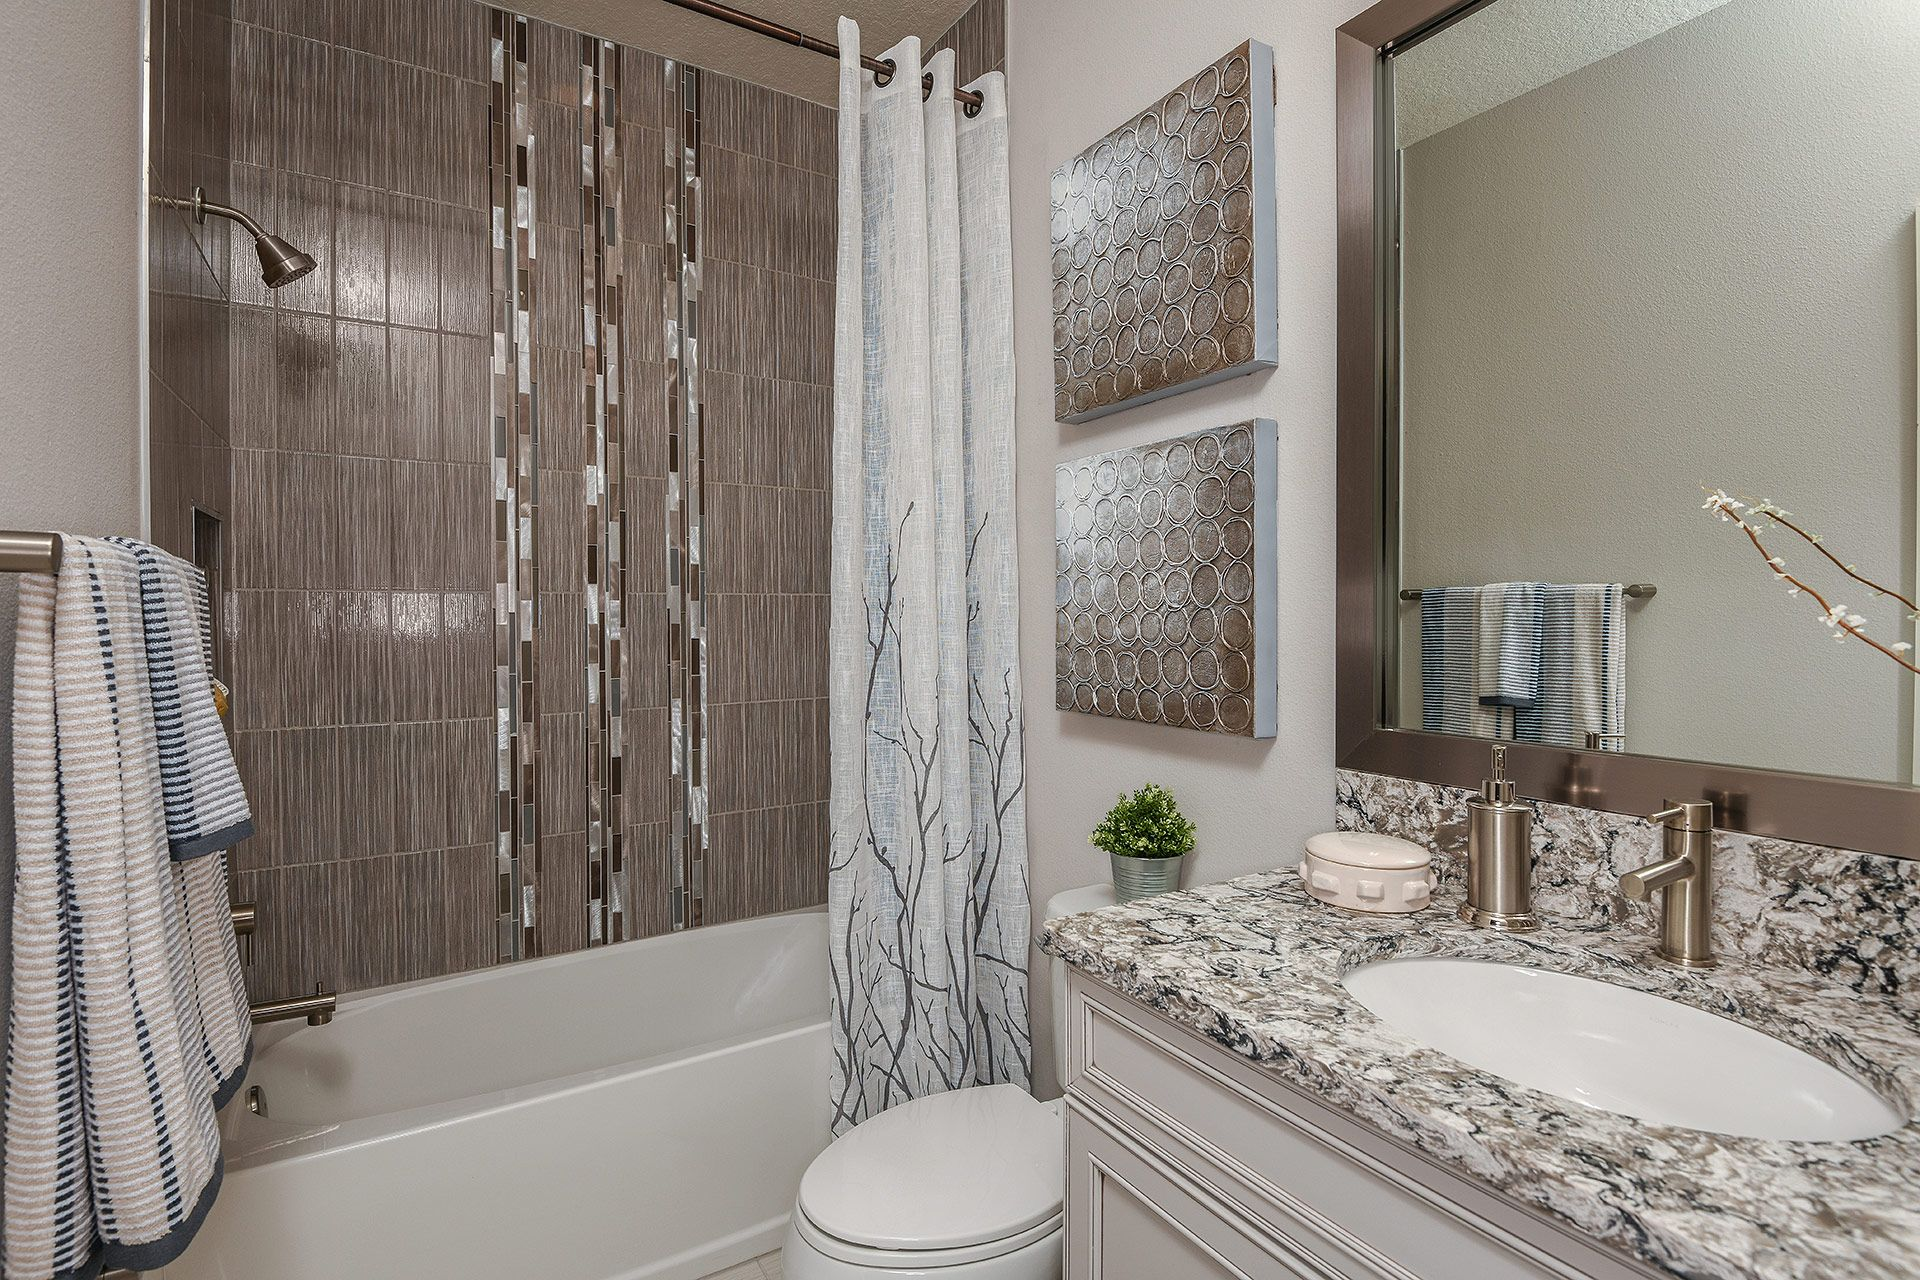 Bathroom featured in the Biscayne II By Homes by WestBay in Tampa-St. Petersburg, FL